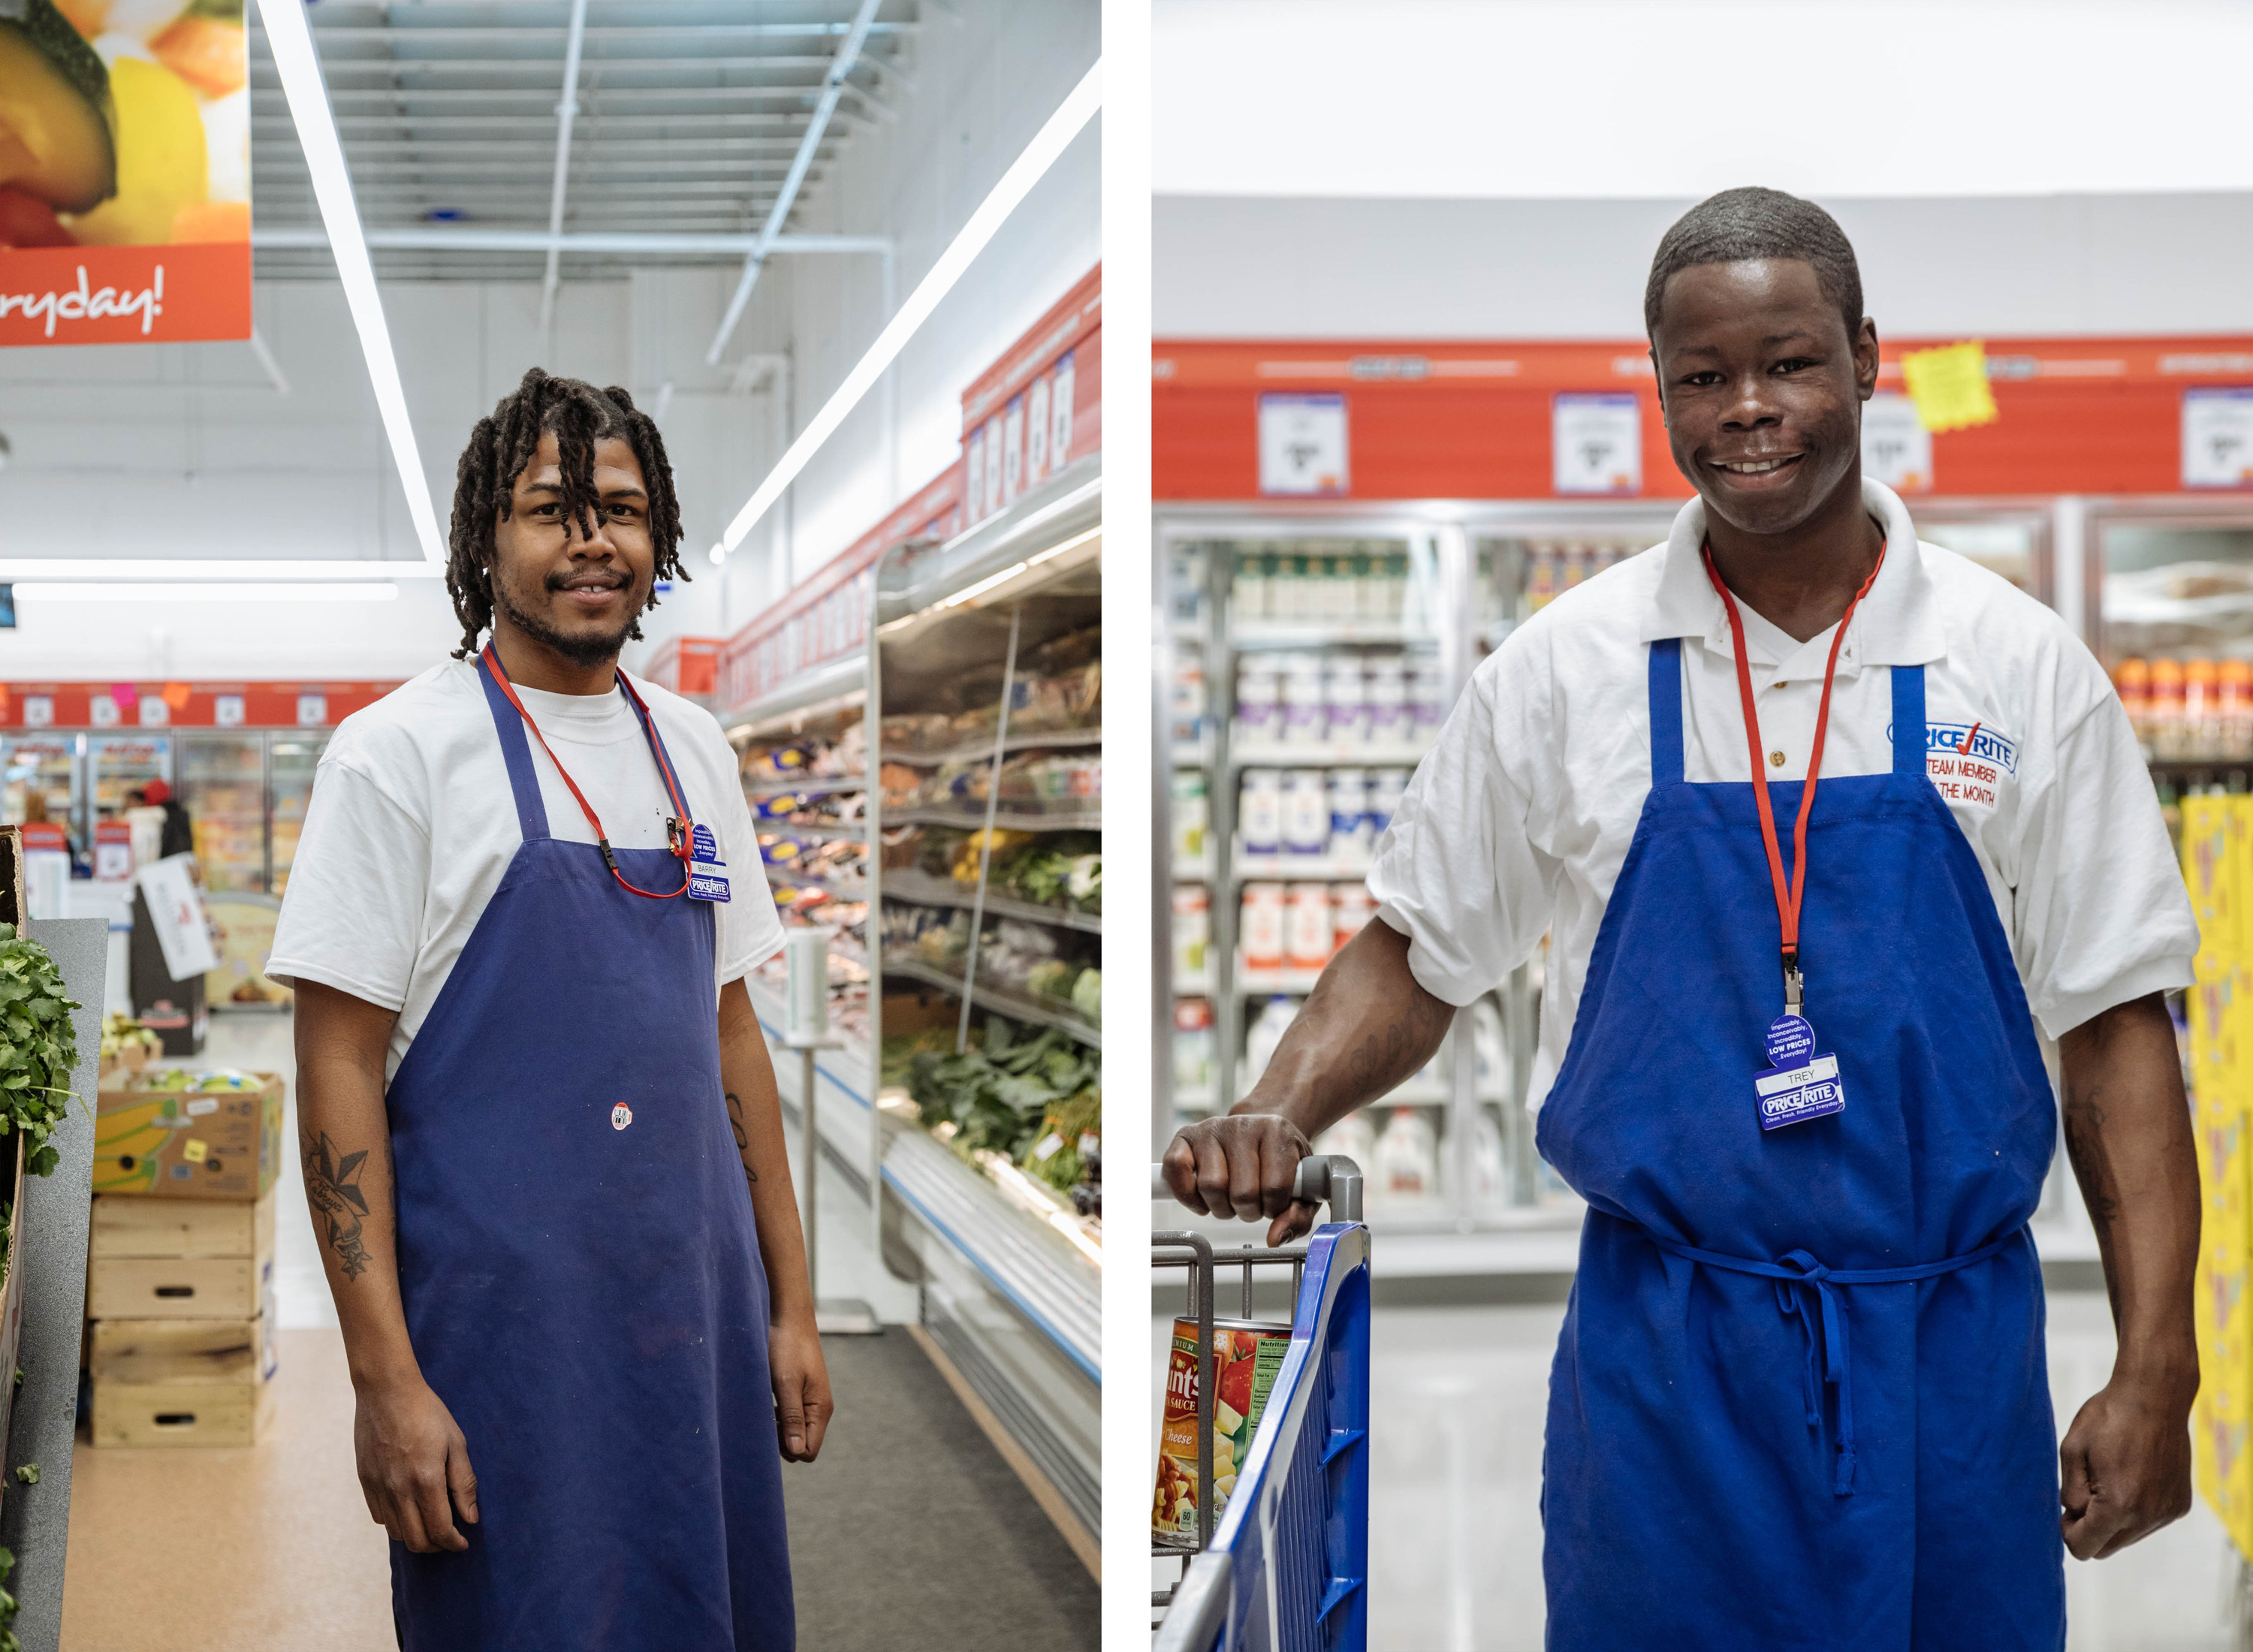 A split image of two men in Price Rite aprons in the grocery store